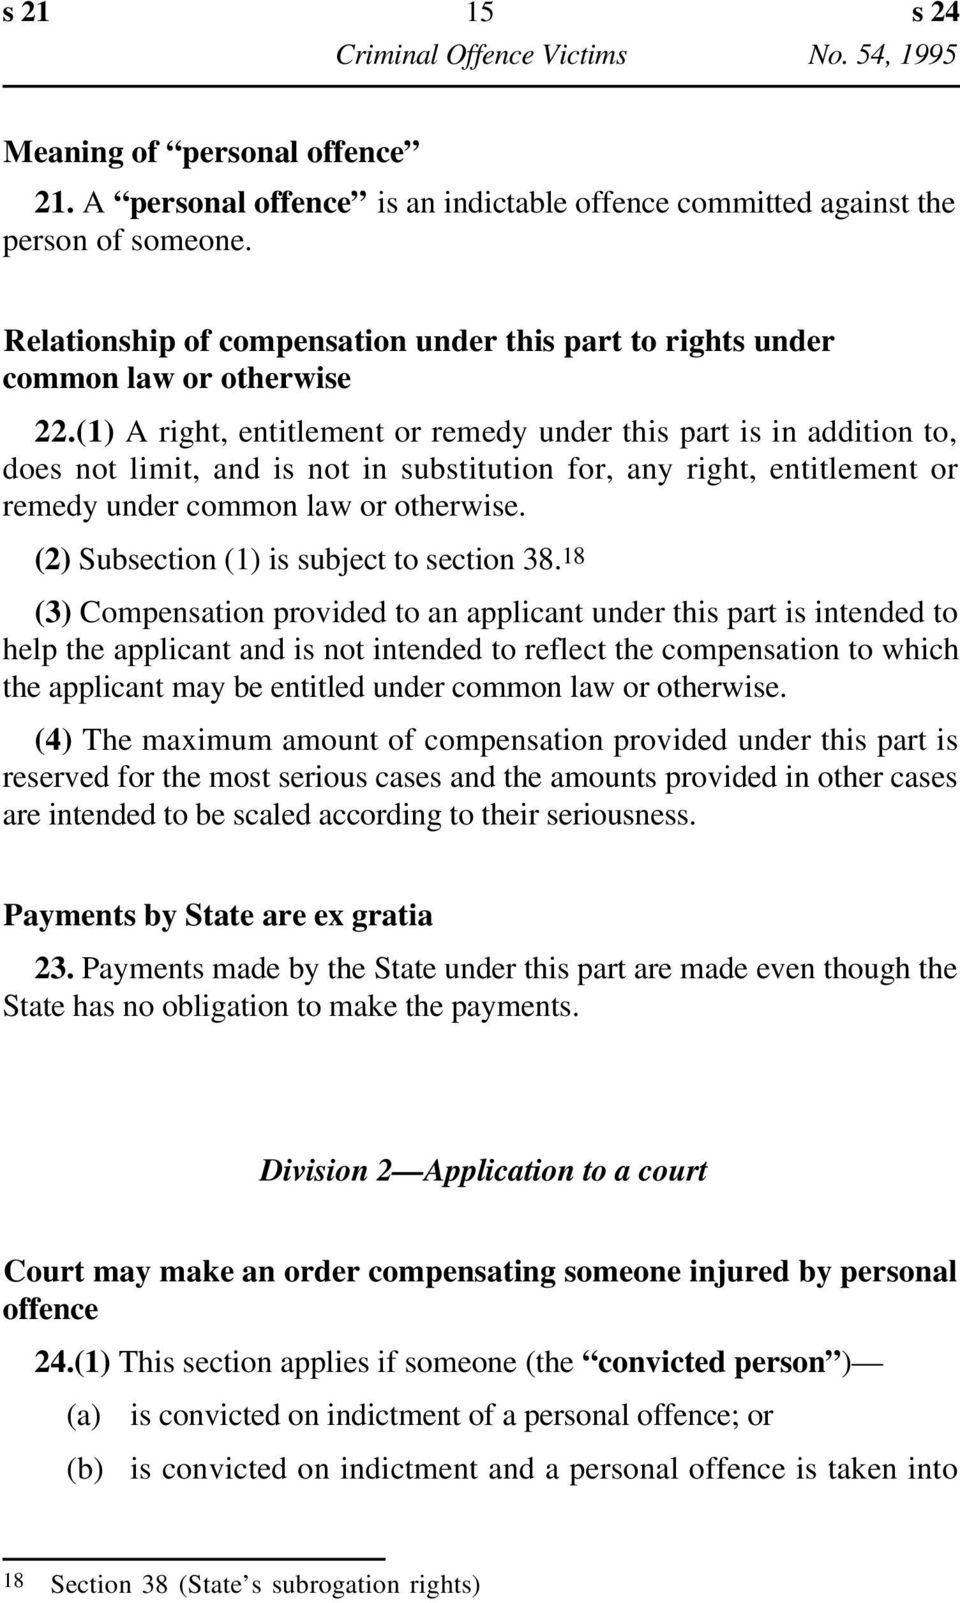 (1) A right, entitlement or remedy under this part is in addition to, does not limit, and is not in substitution for, any right, entitlement or remedy under common law or otherwise.